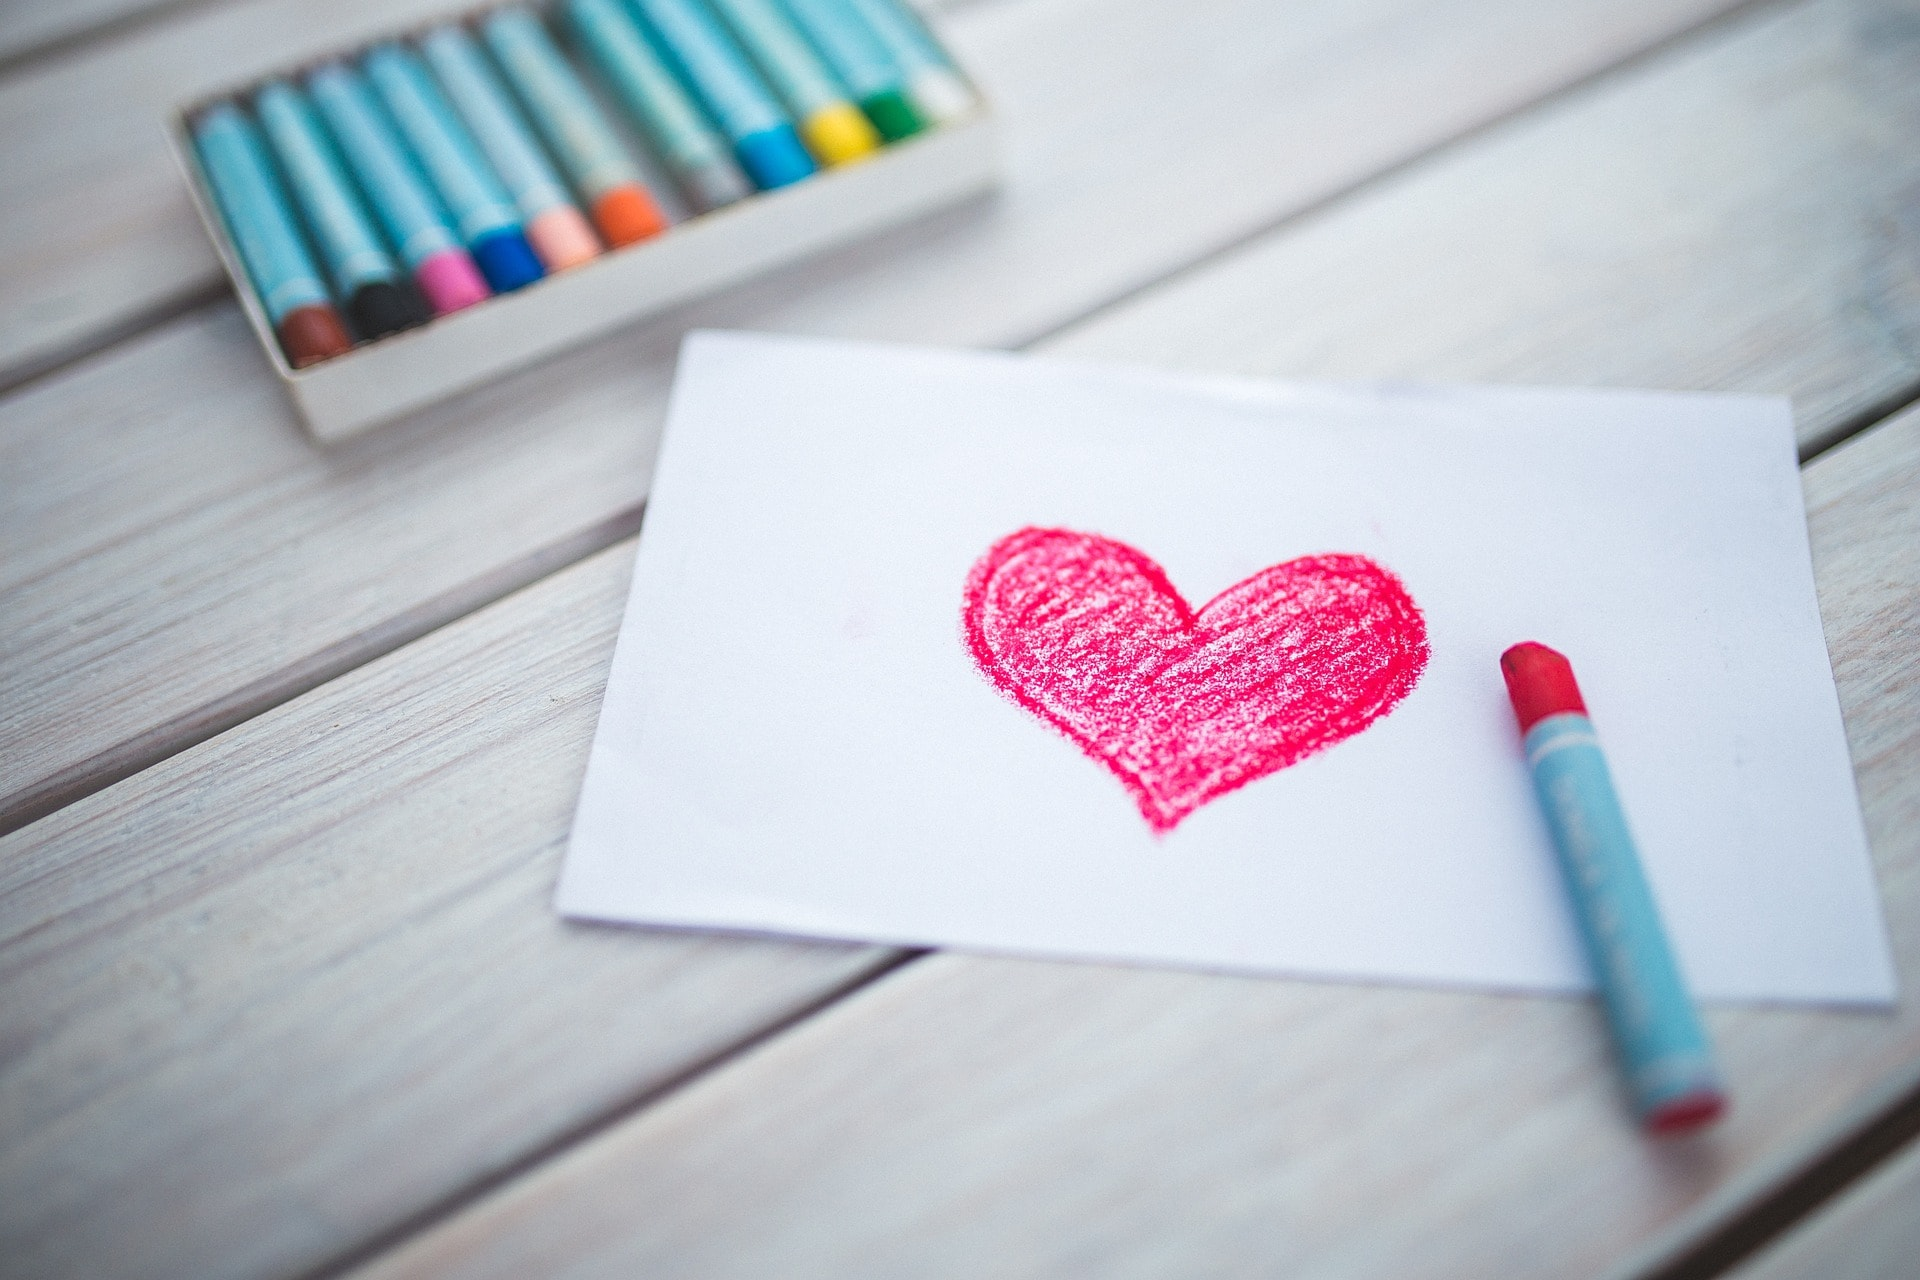 Ways to Market Your Business for Valentine's Day